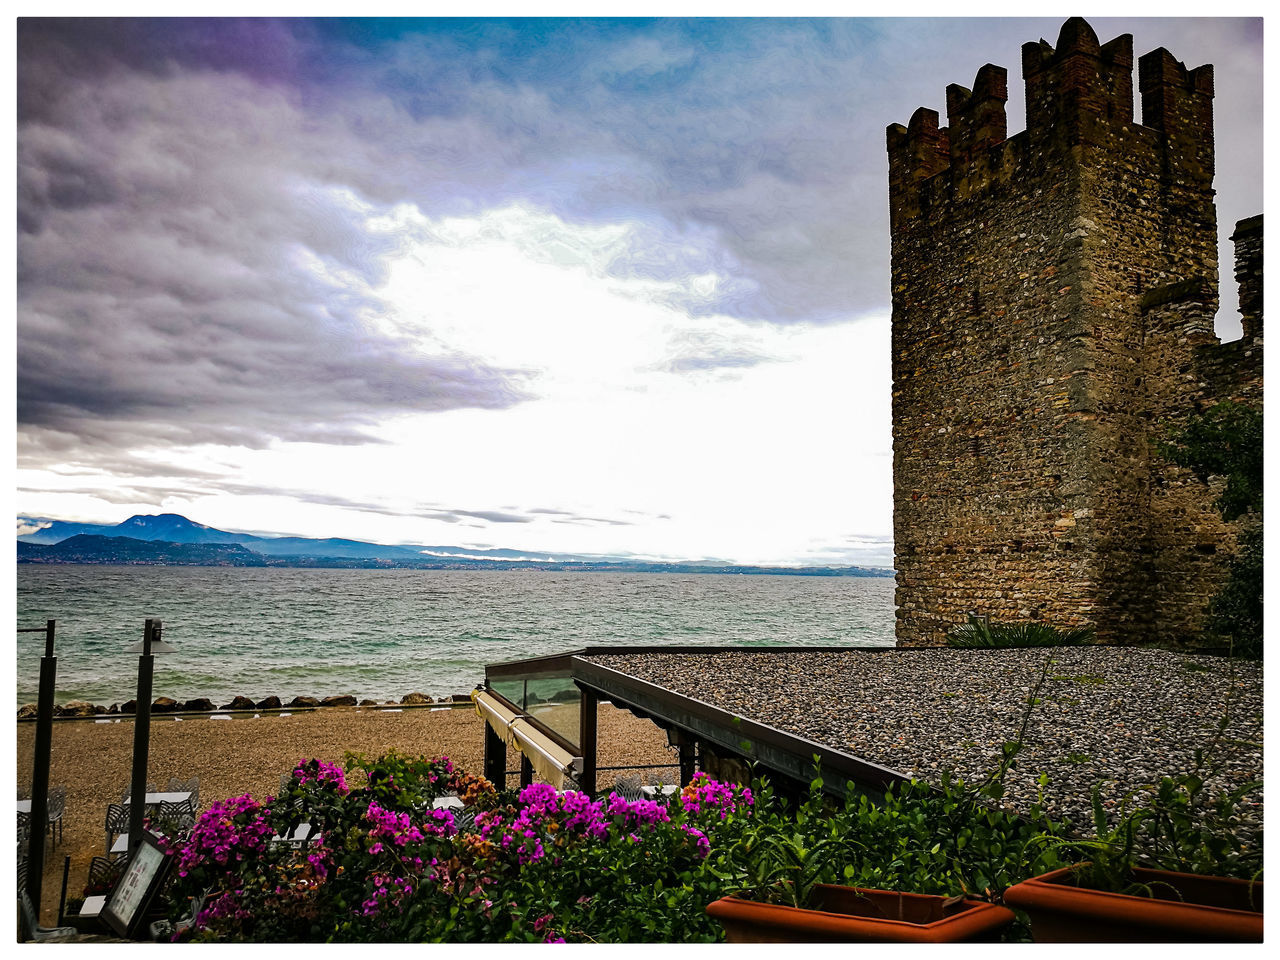 sky, nature, day, built structure, water, beauty in nature, architecture, building exterior, sea, outdoors, flower, history, cloud - sky, scenics, no people, castle, travel destinations, growth